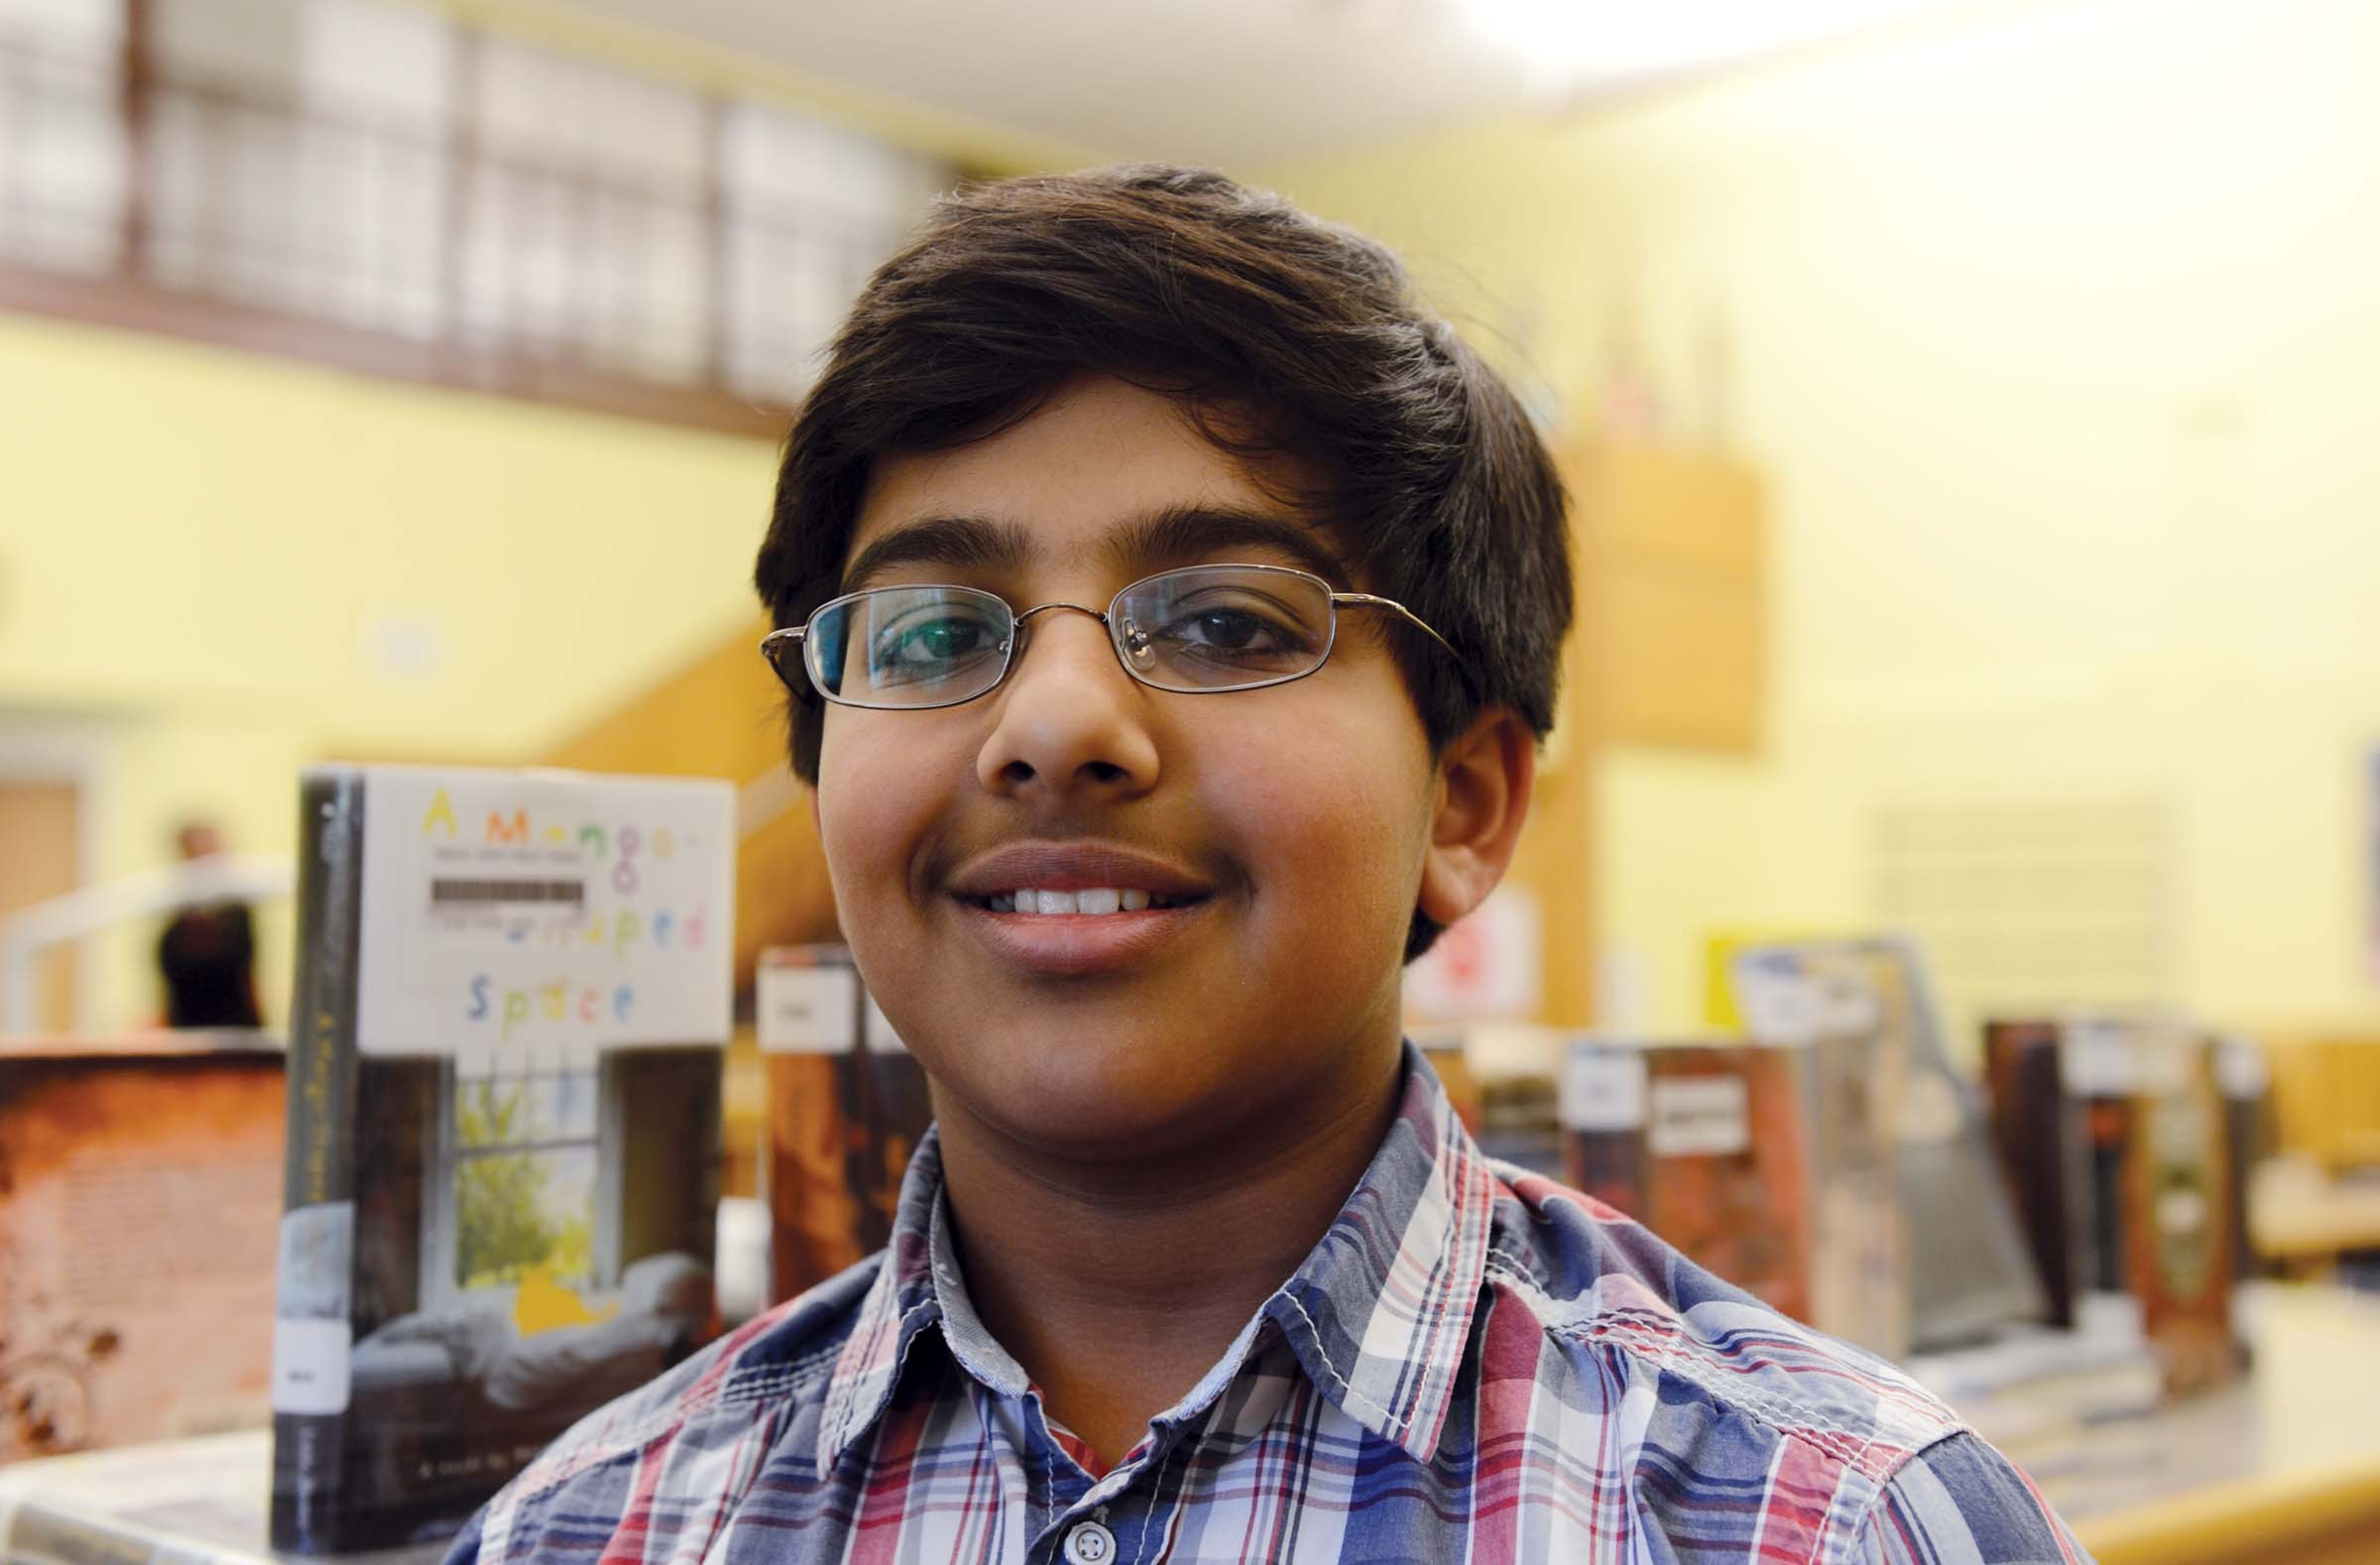 Aditya Kannoth, a five-time spelling bee champ from Henrico County, says the key to great spelling is finding a word's root. - SCOTT ELMQUIST